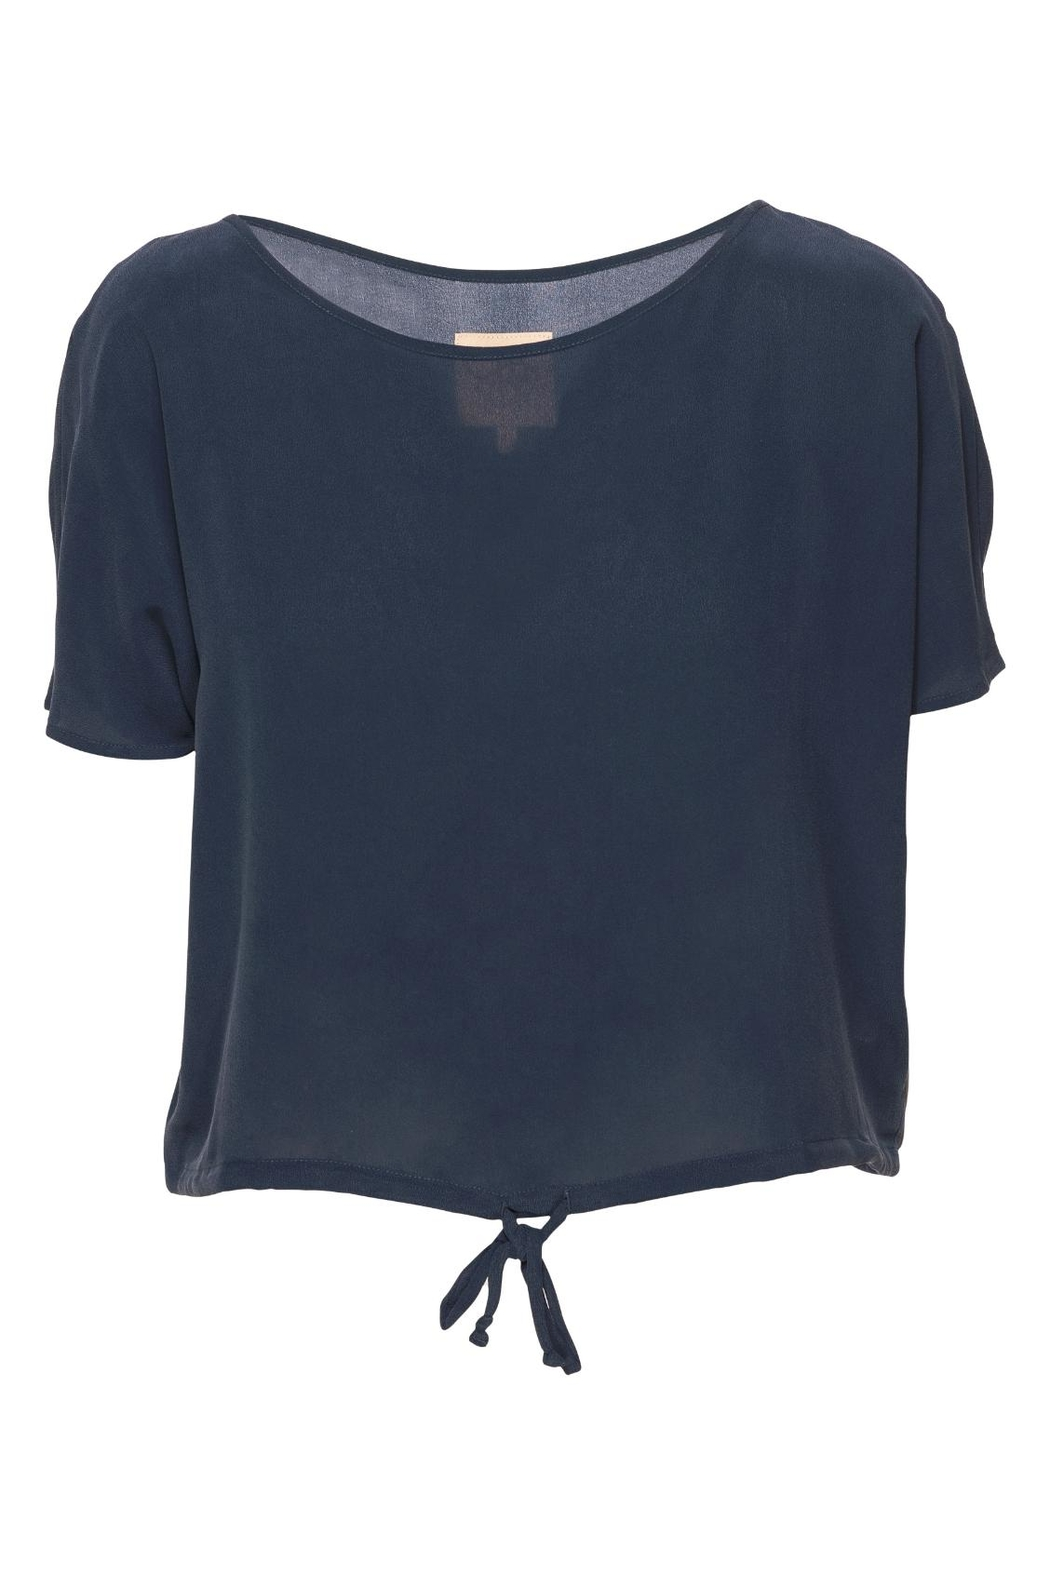 Chaser LA Drawstring Dolman Top - Front Cropped Image